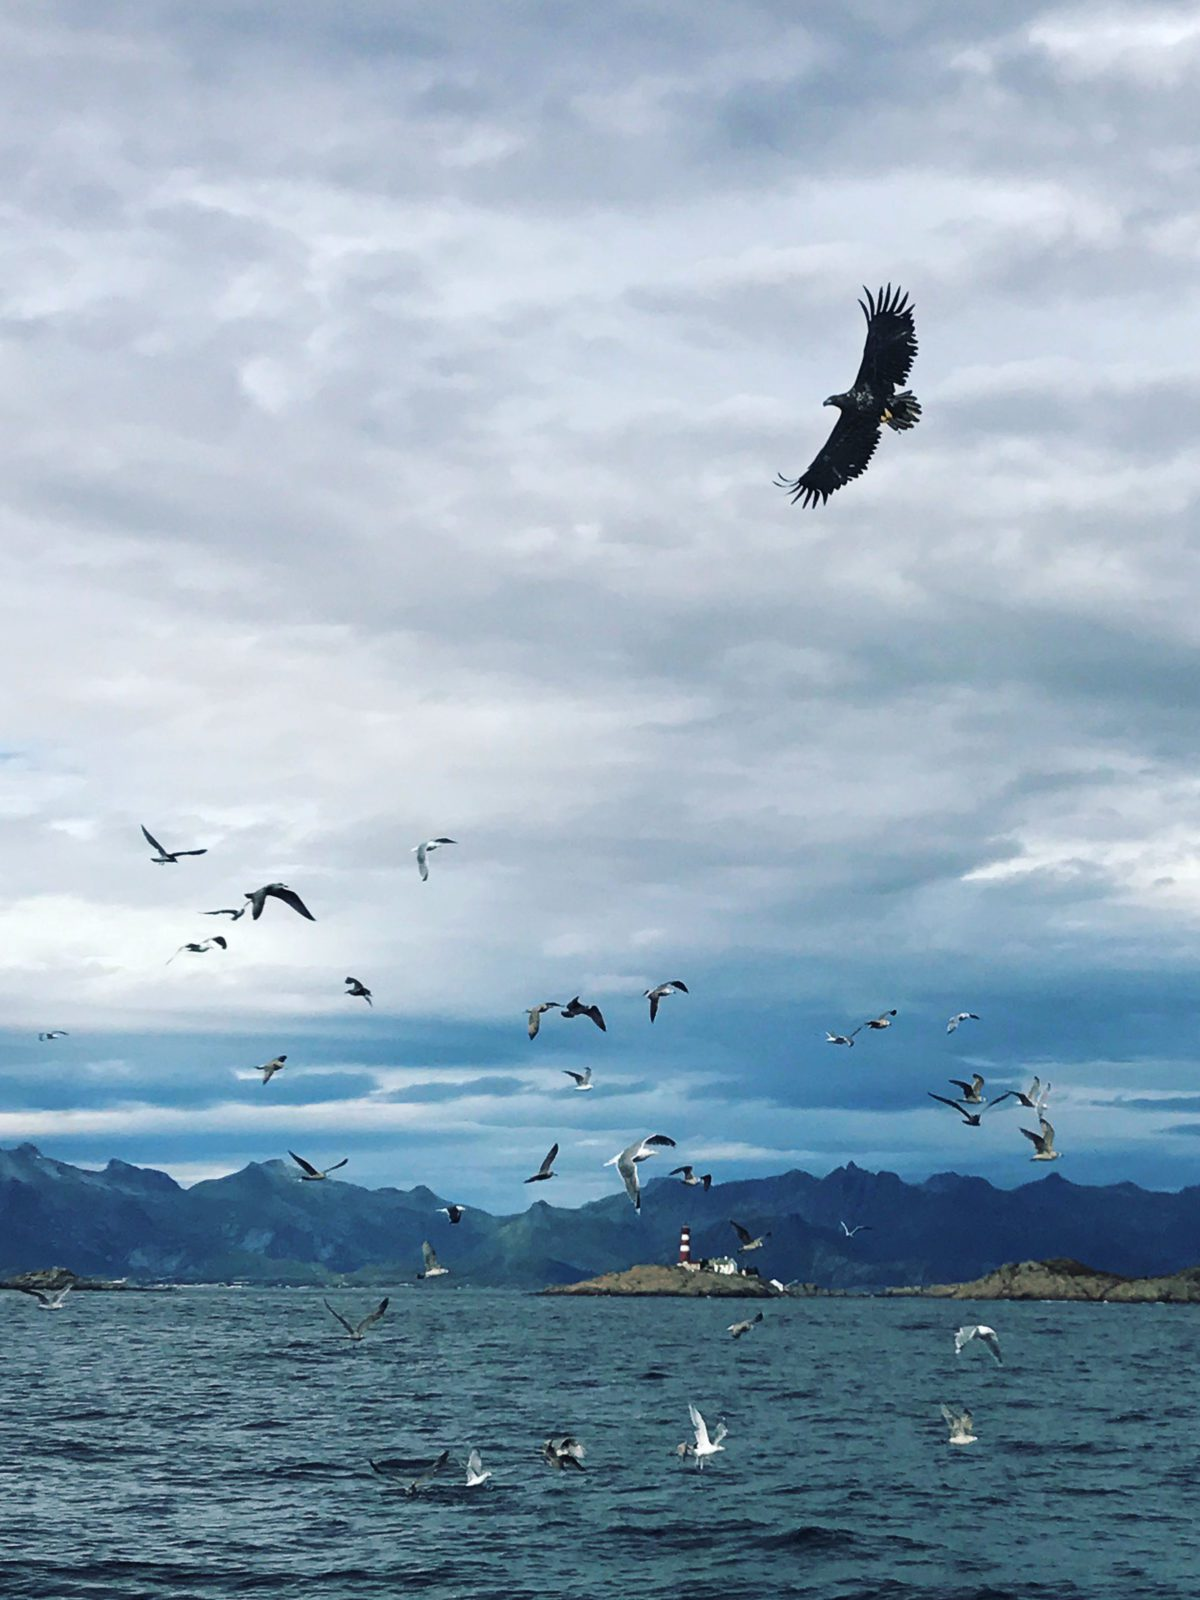 An eagle in Lofoten.